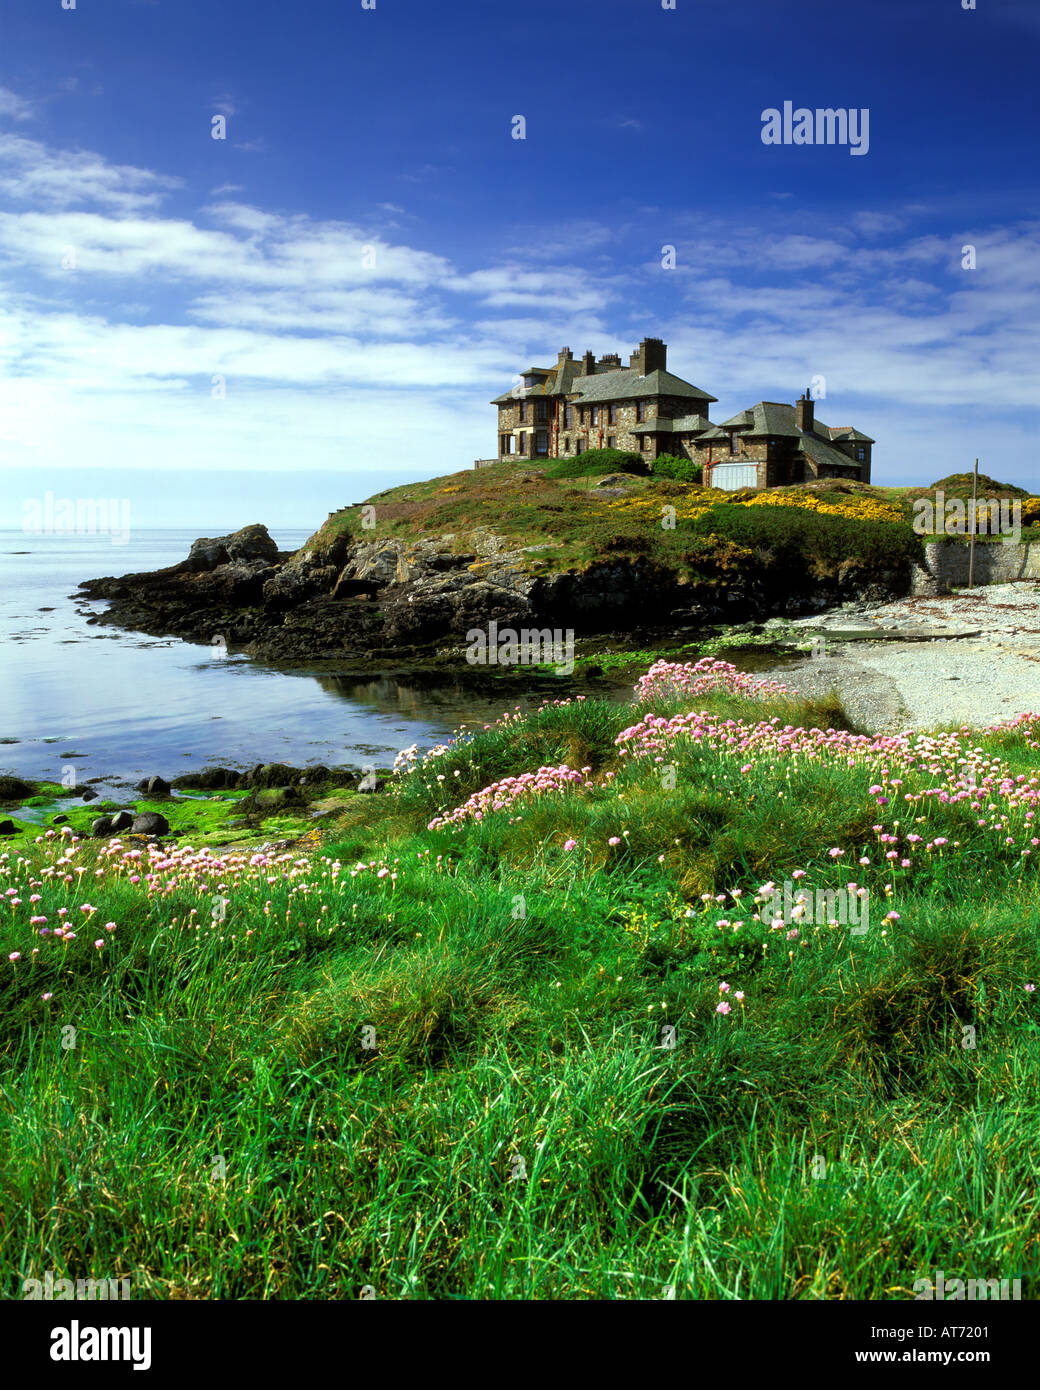 House / Hotel, Anglesey North Wales UK - Stock Image